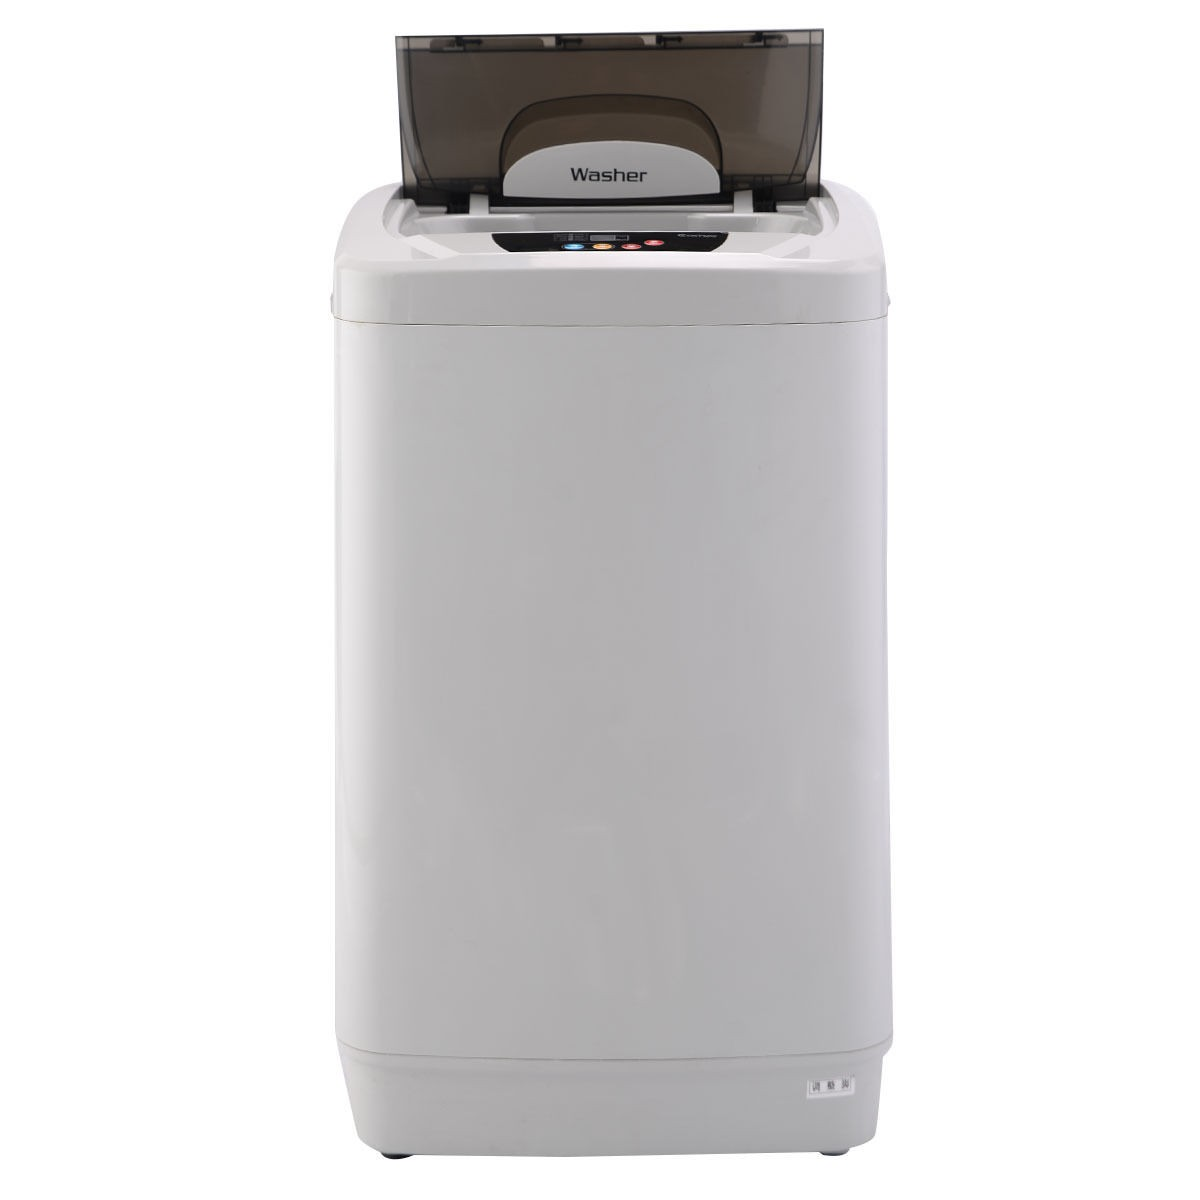 12 LBS Portable Small Washing Machine Fully Automatic Spin